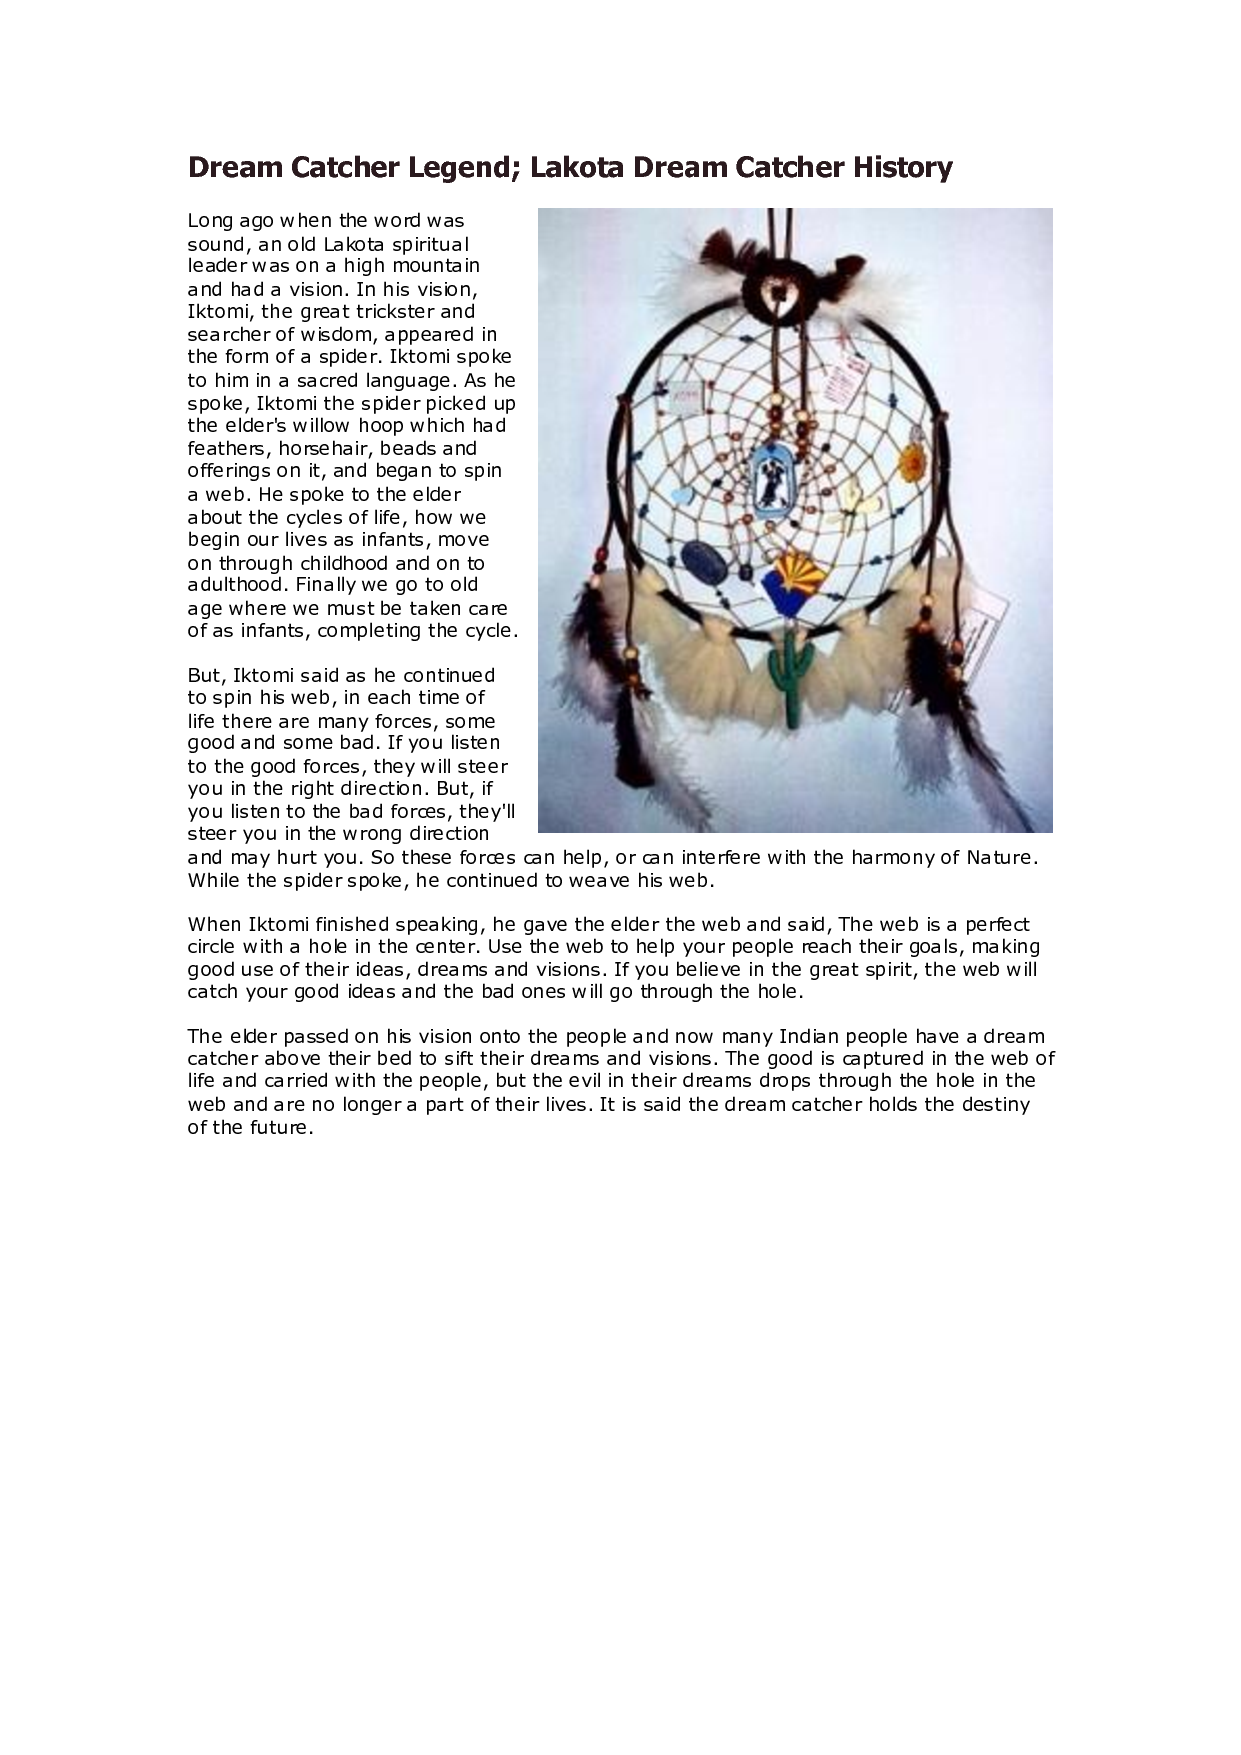 History Of Dream Catchers Captivating Lakota Dream Catcher Legend  Dream Catcher Legend Lakota Dream